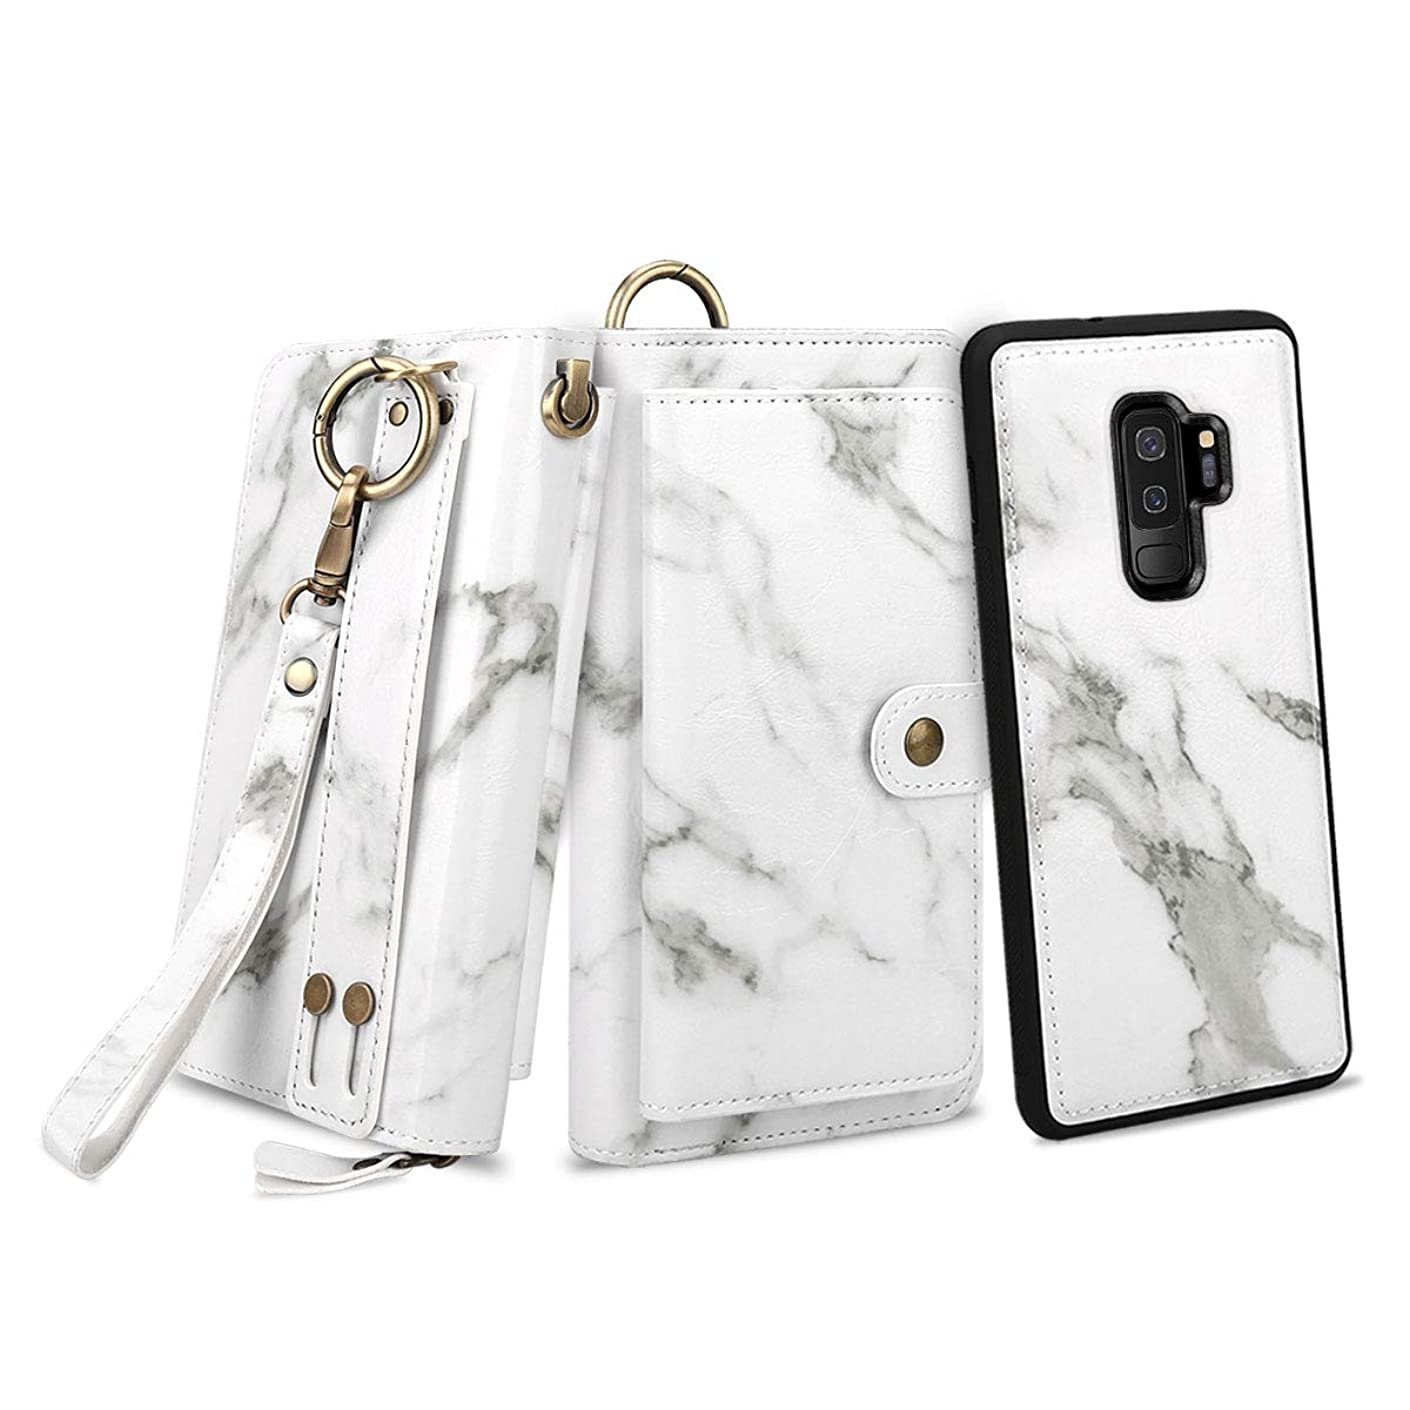 Petocase Compatible S9 Plus Wallet Case, Multi-Function Zipper Purse with Detachable Magnetic Back Cover Wristlets 13 Card Slots & 4 Cash Pocket Cover for Samsung Galaxy S9 Plus White Marble